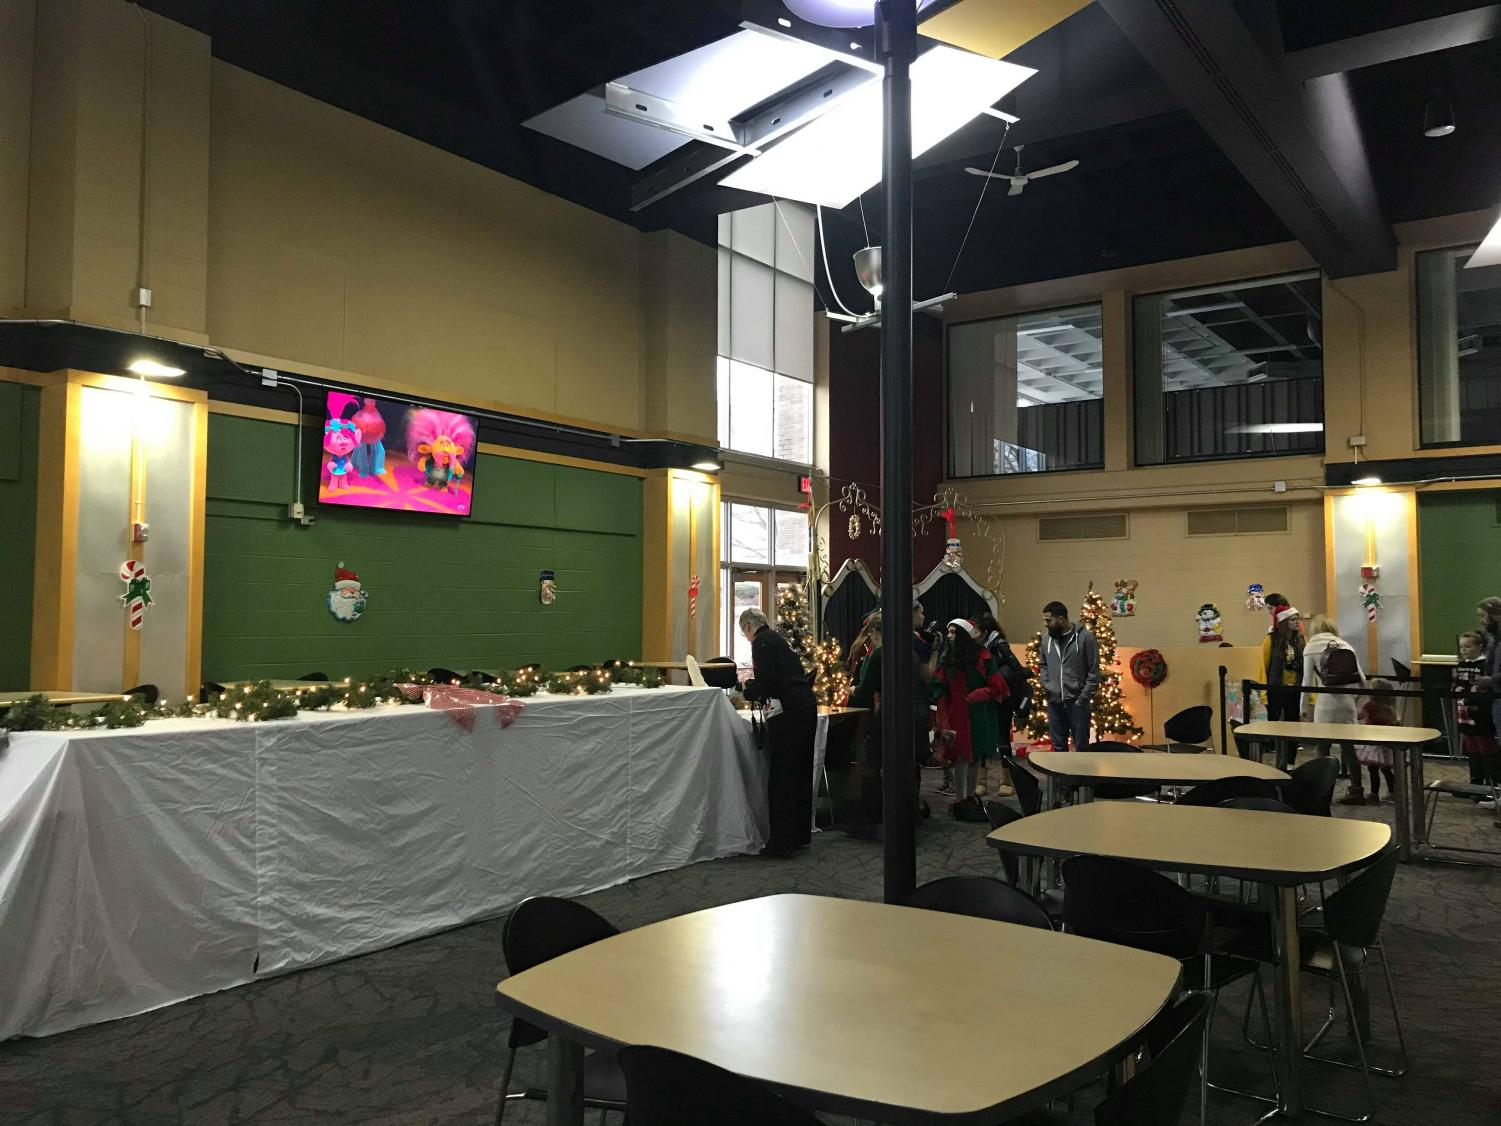 Esker Dining Hall was lined with Christmas decorations and hungry families Saturday, Dec. 7 from 8 a.m. - 10:45 a.m. for the Optimist Breakfast with Santa.